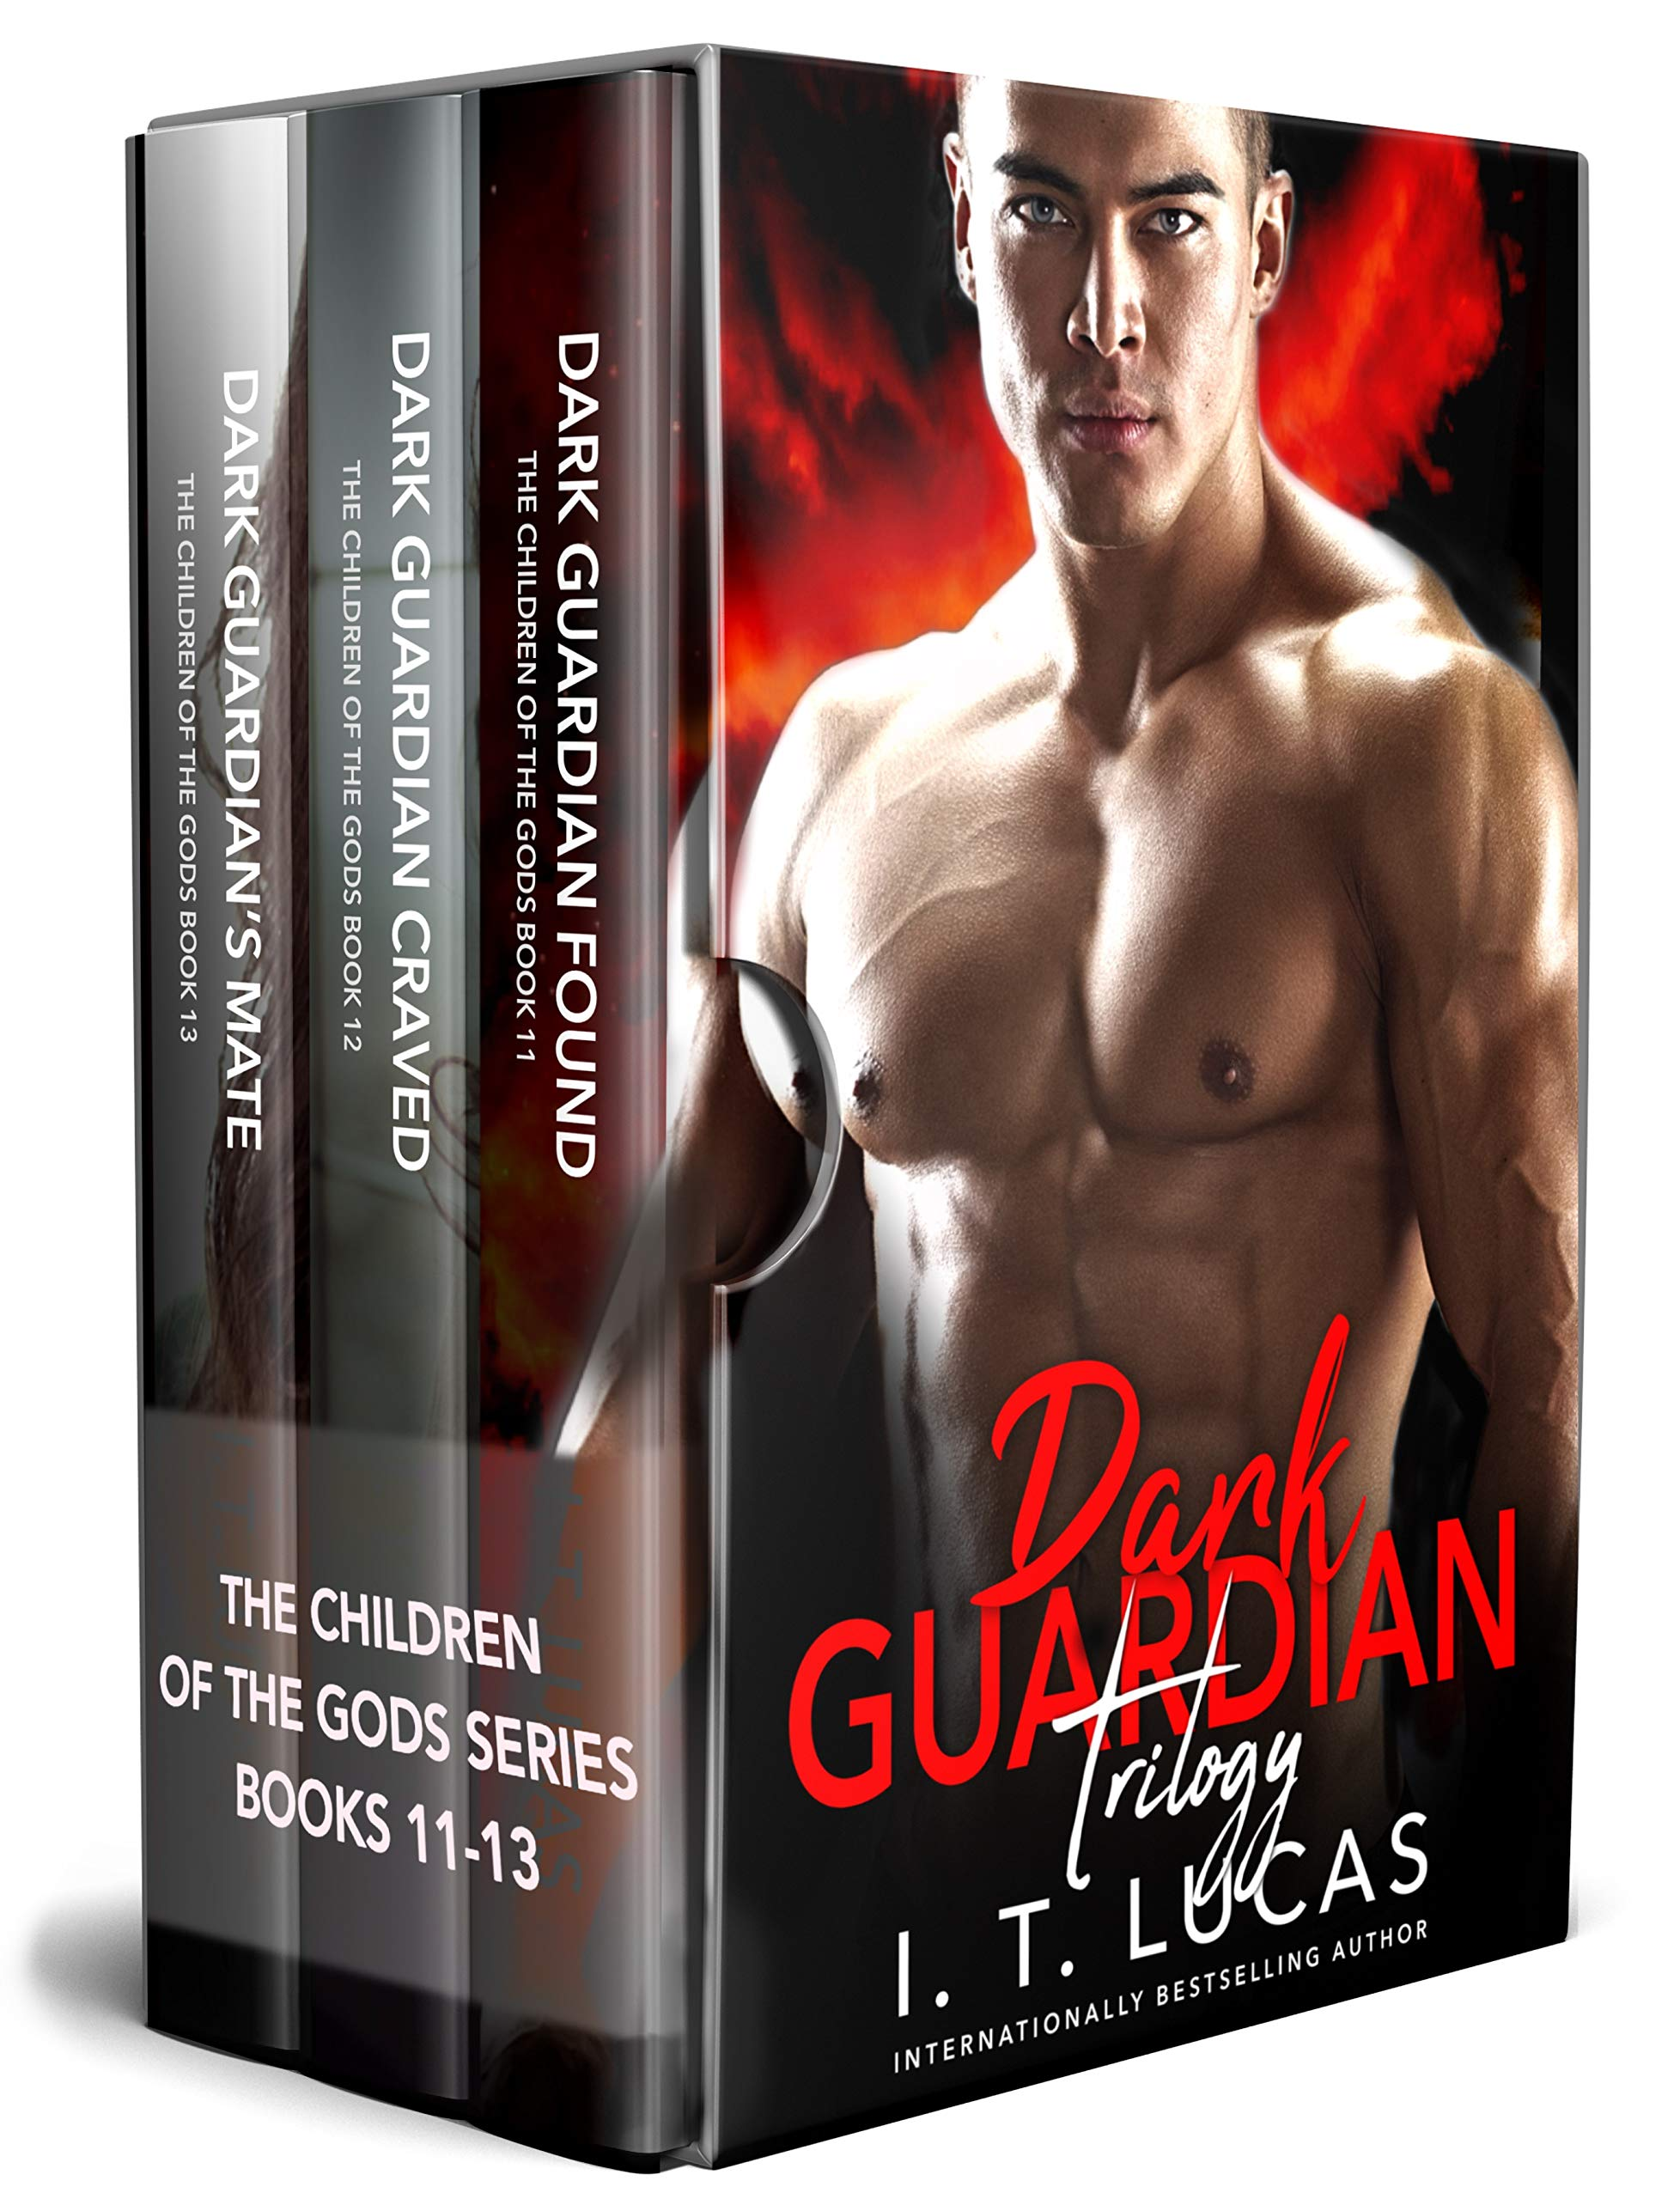 The Children of the Gods Series Books 11-13: Dark Guardian Trilogy